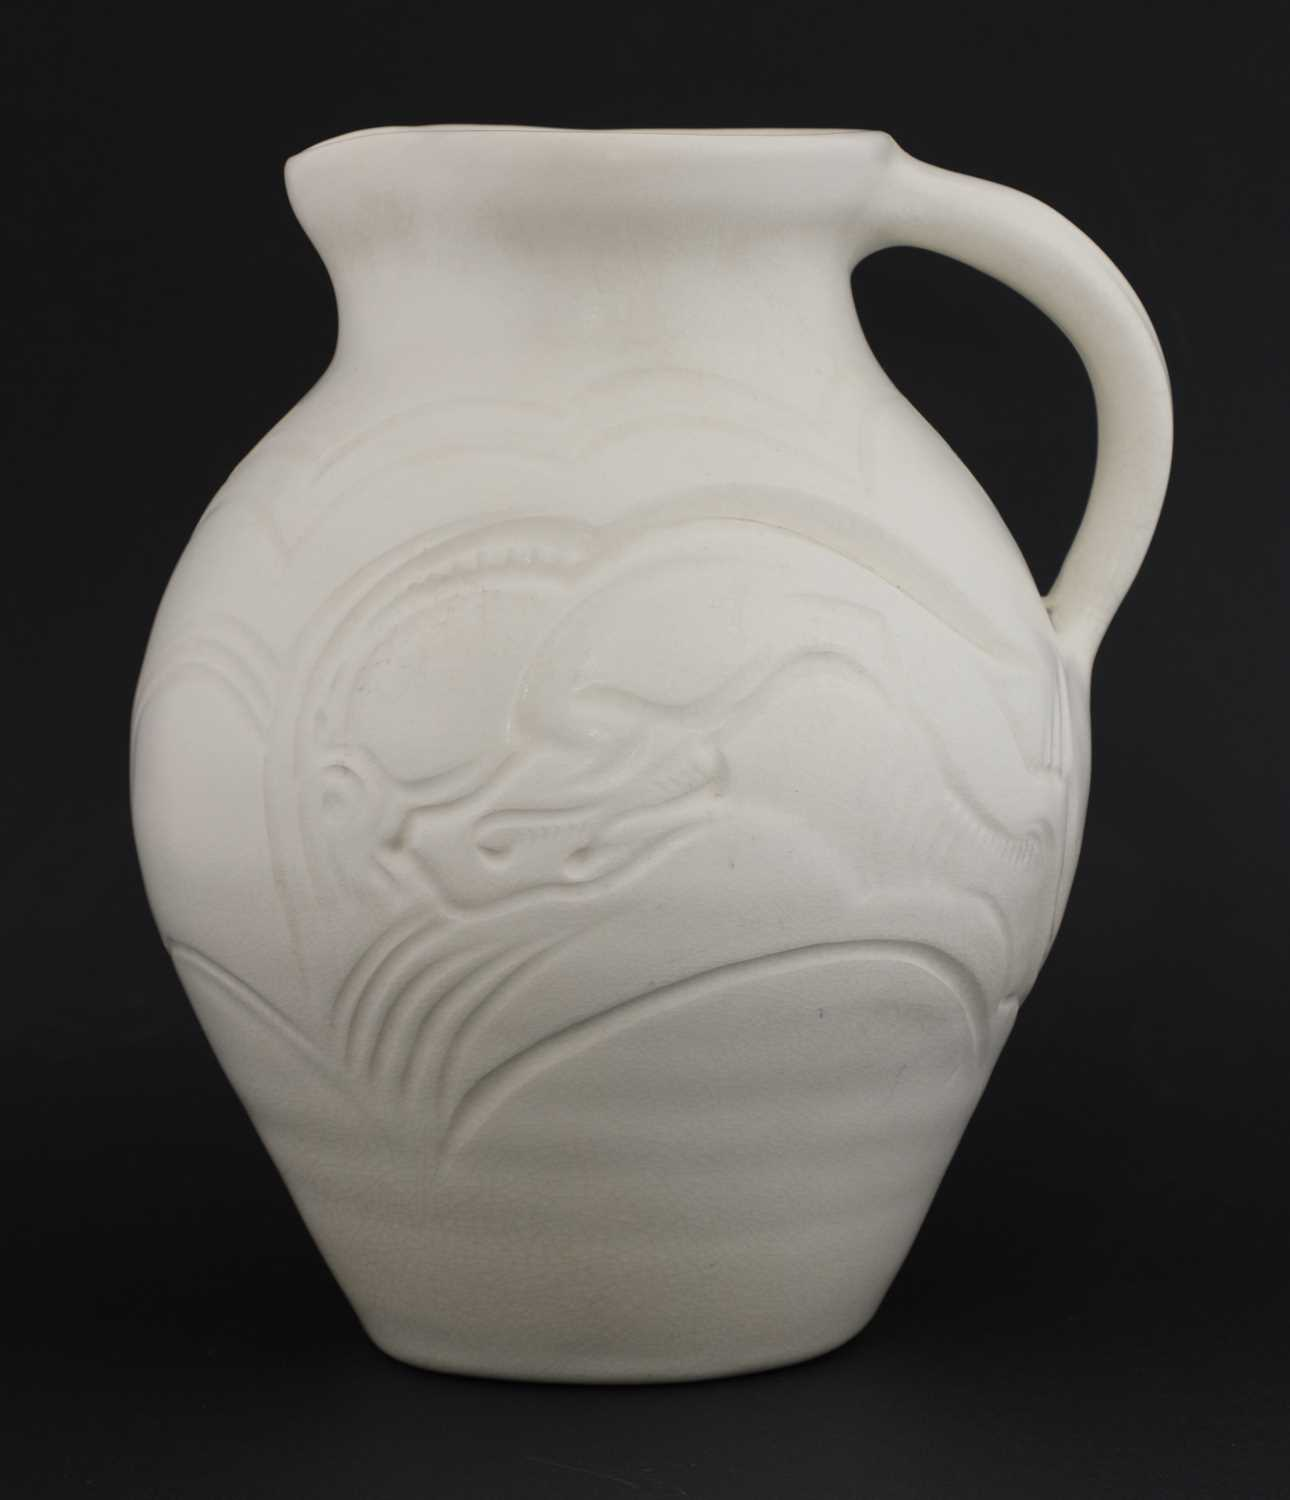 Lot 374 - A Susie Cooper pottery jug